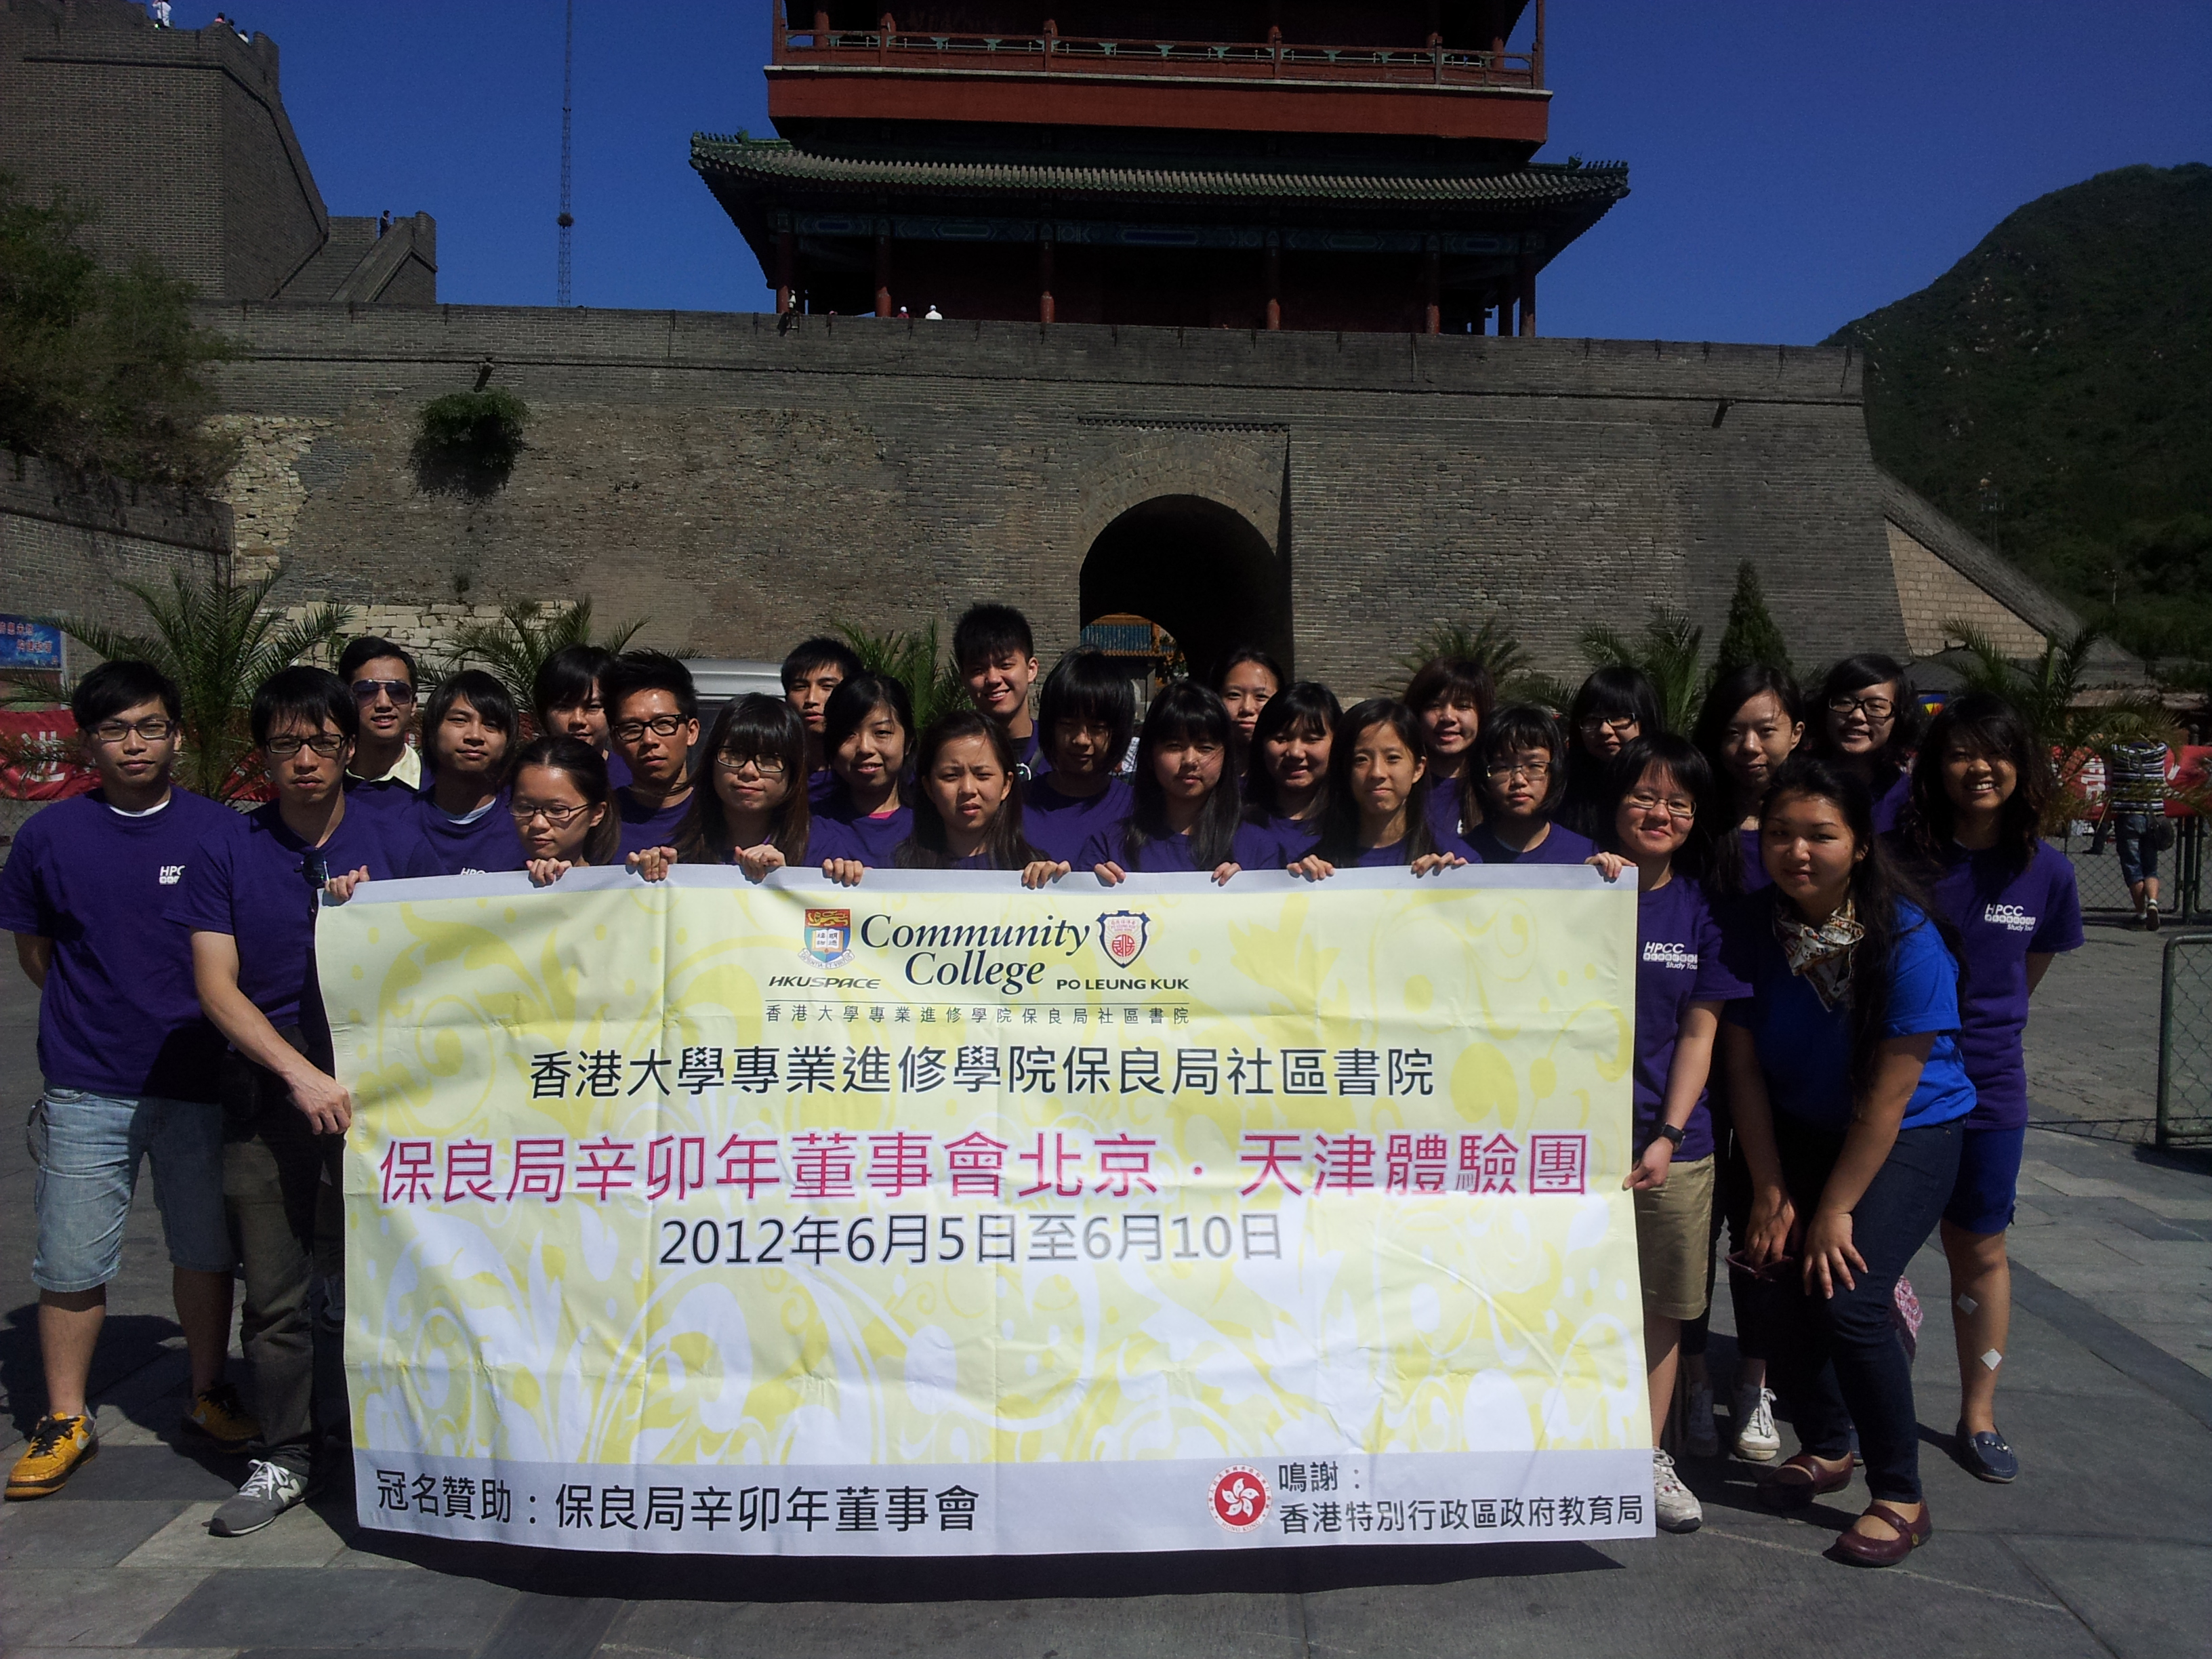 Beijing & Tianjin Exchange Tour 2012 - Photo - 1